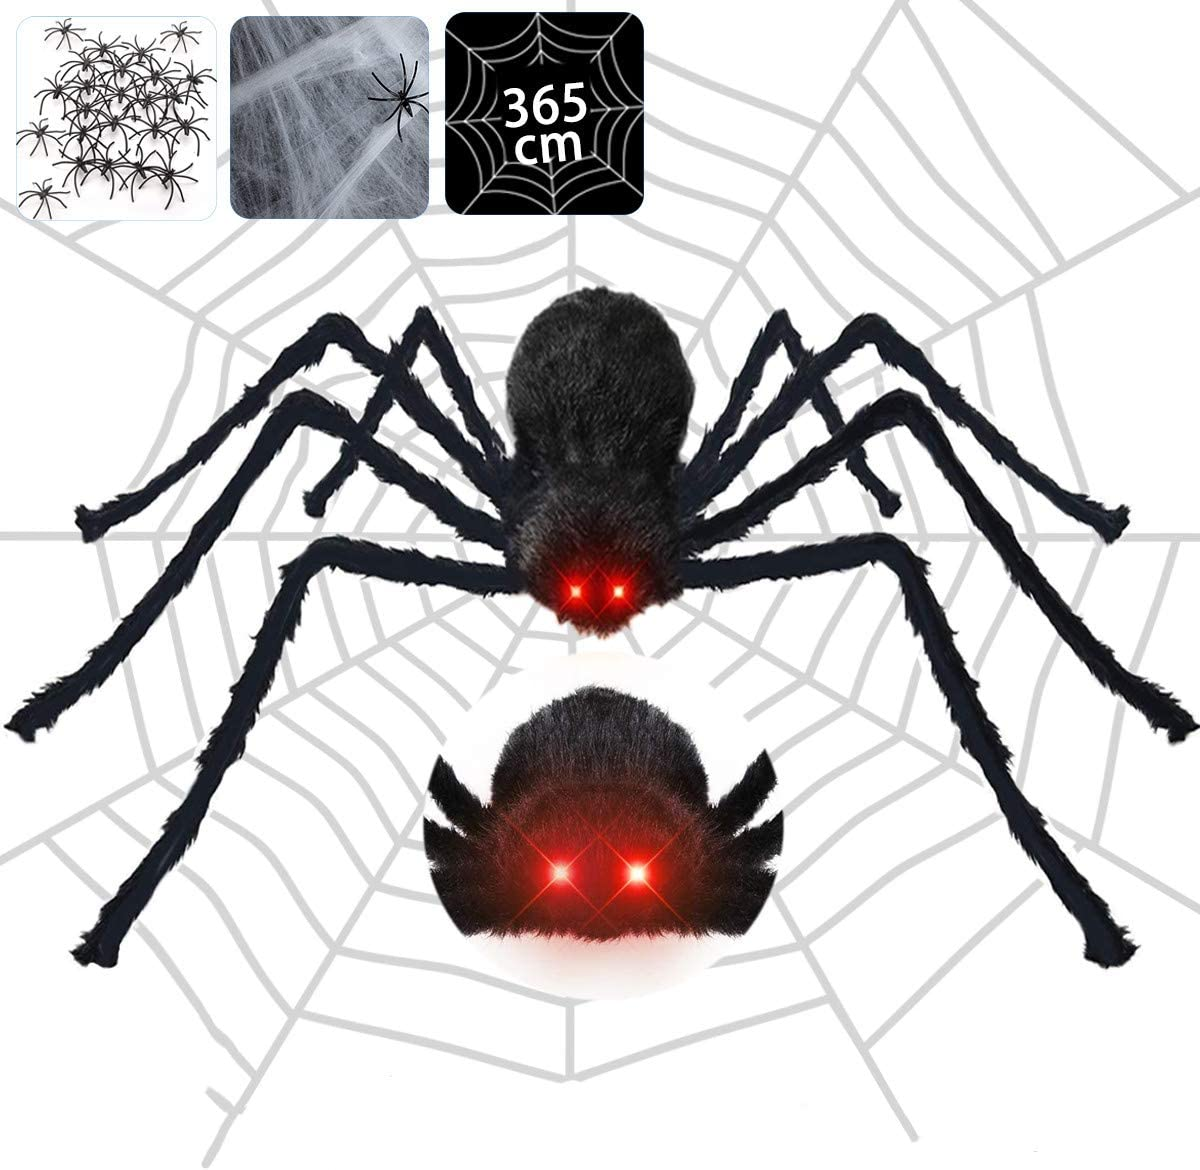 Halloween Spider Decorations, 4.1ft Scary Giant Spider with Red LED Eyes and Spooky Sound, 20pcs Small Plastic Spiders + 12ft Spider Web + 200sqft Cobwebs for Halloween Decor Outdoor, Indoor, Yard